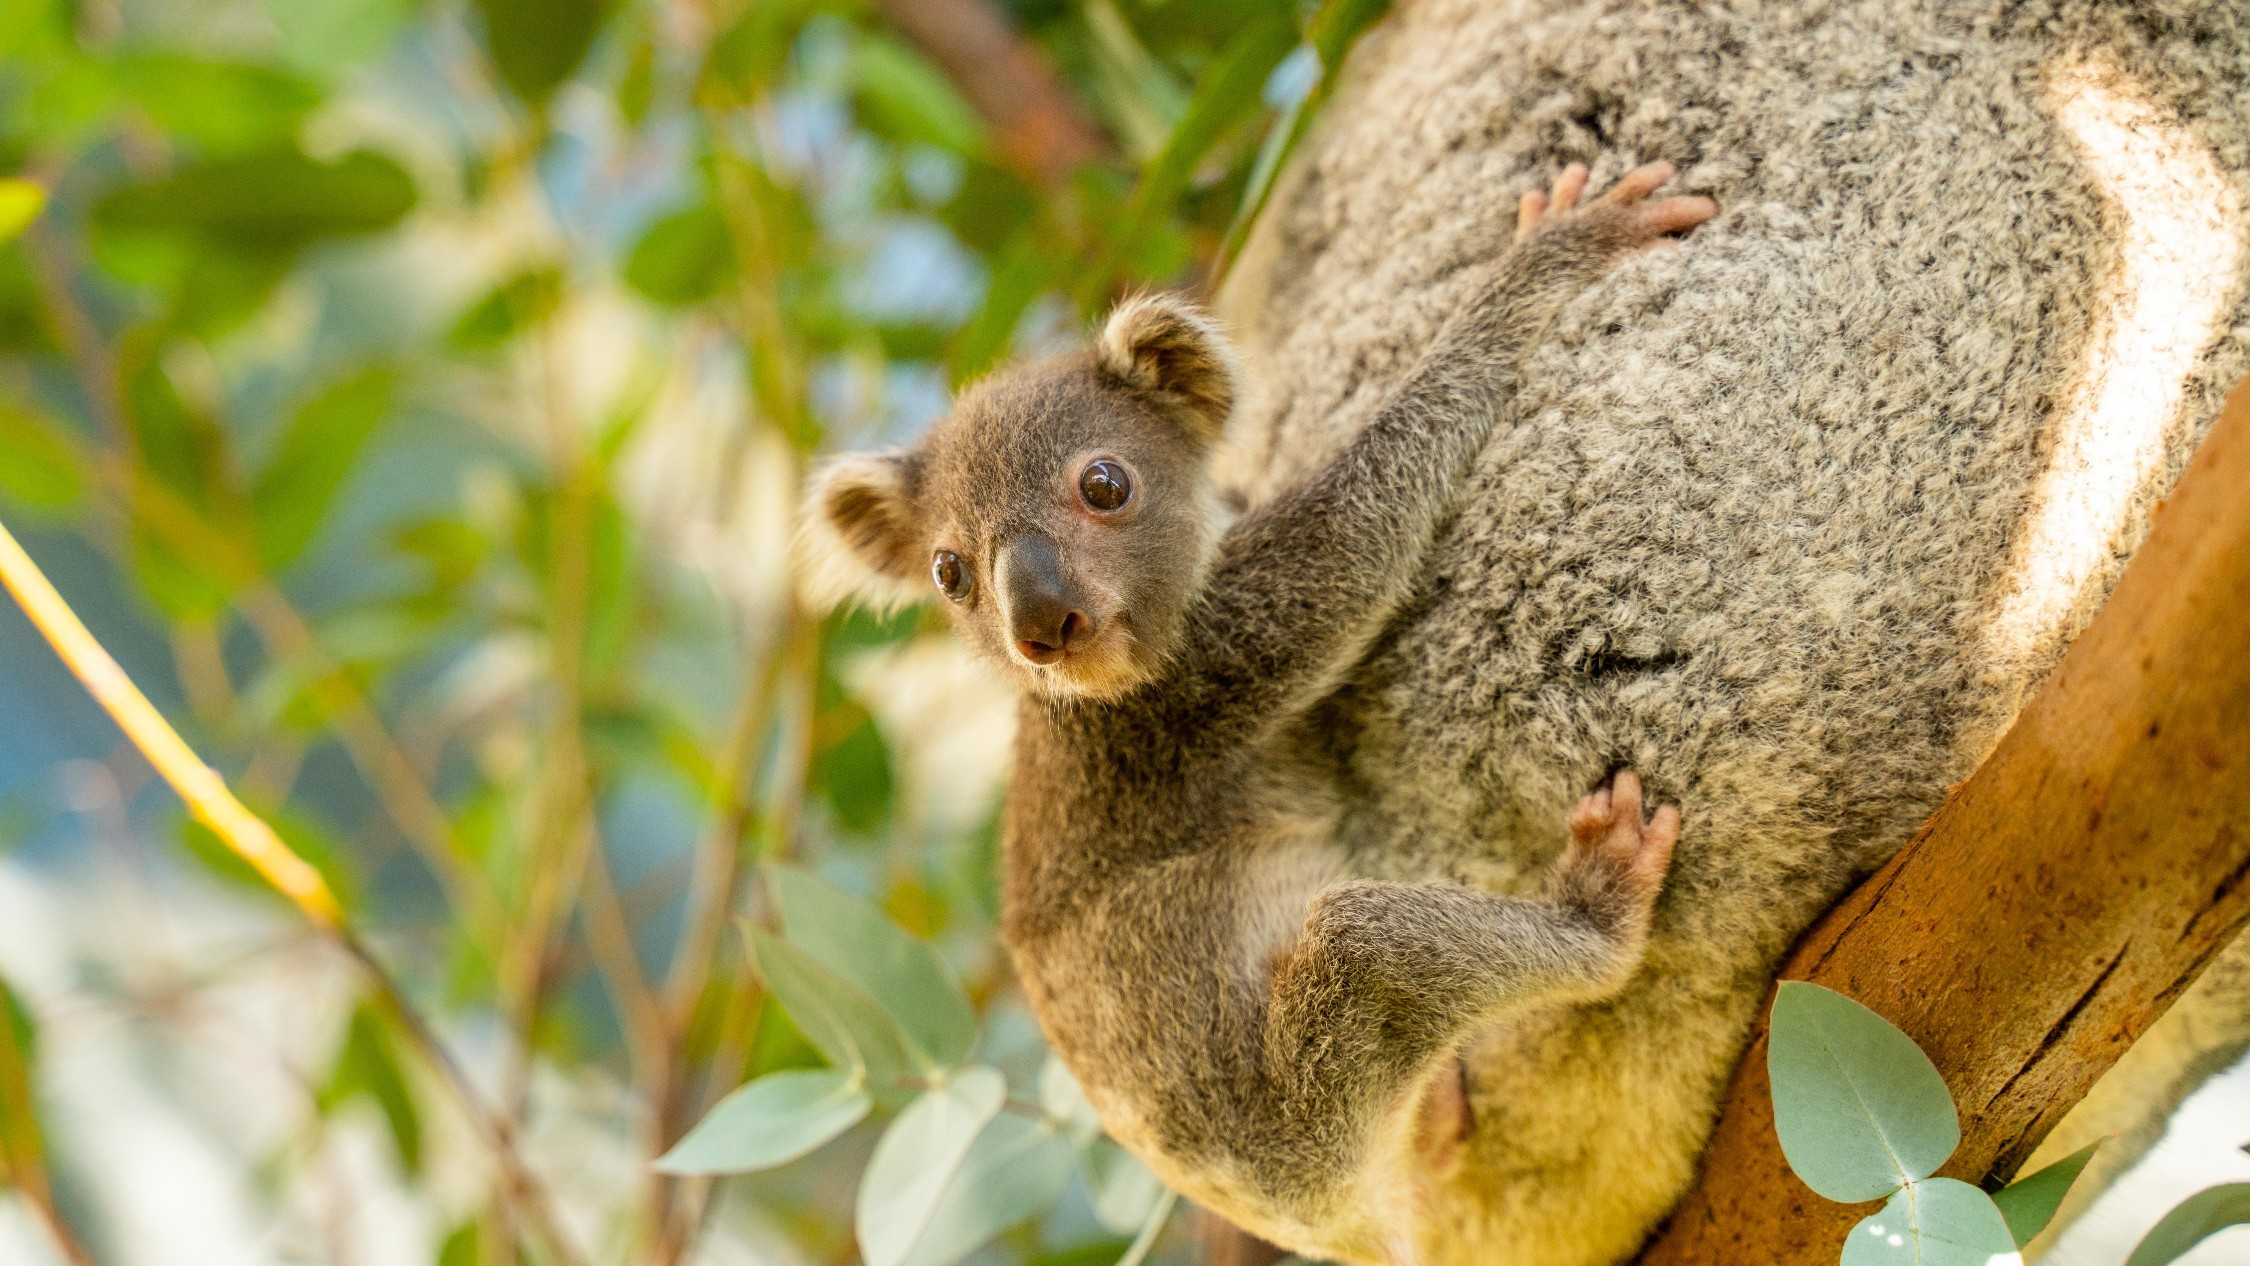 This Sydney zoo wants your help to name its new baby koala